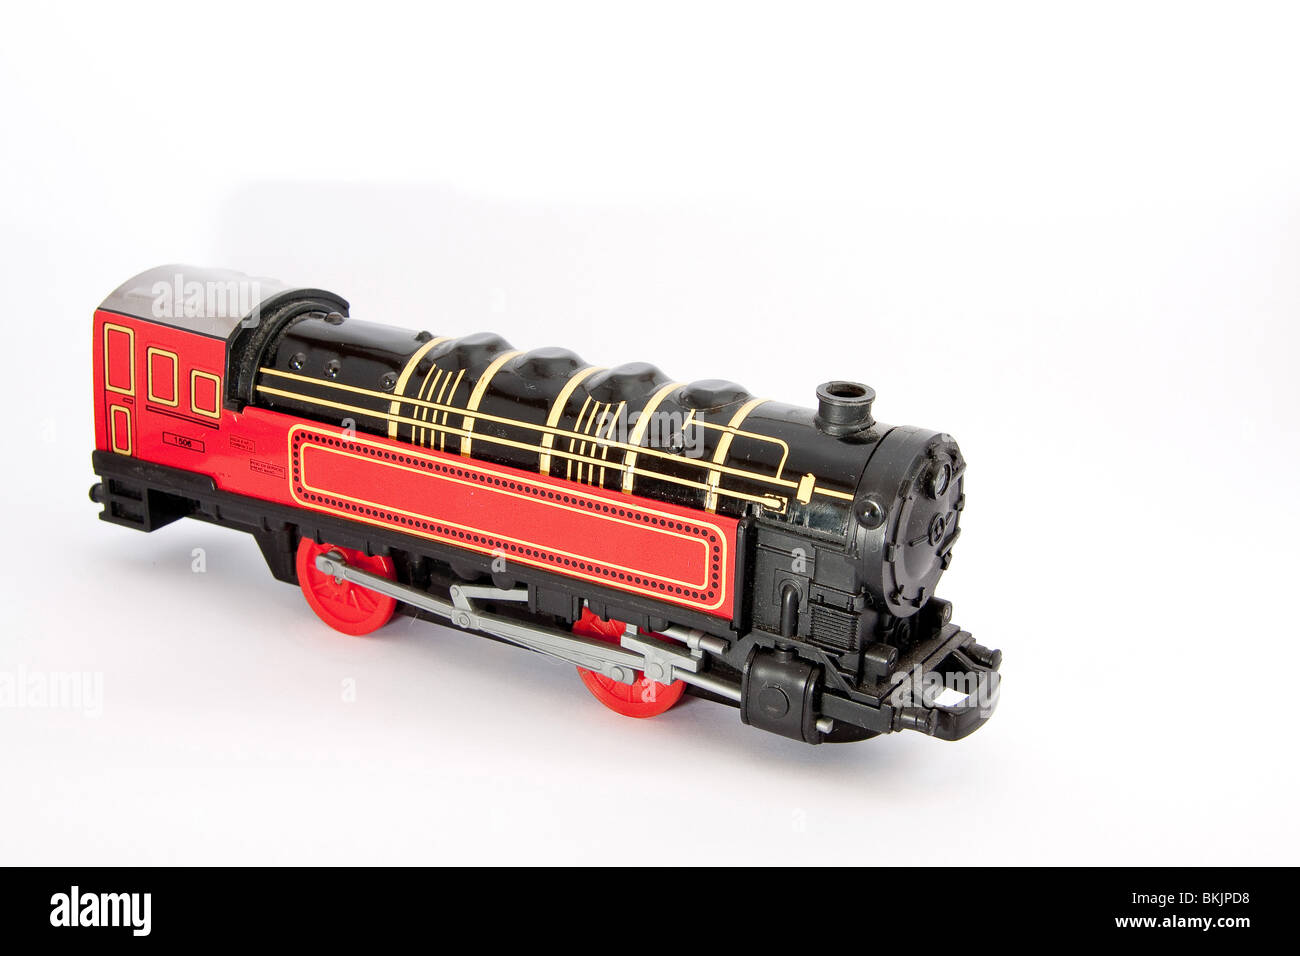 A black and red steam locomotive model - Stock Image